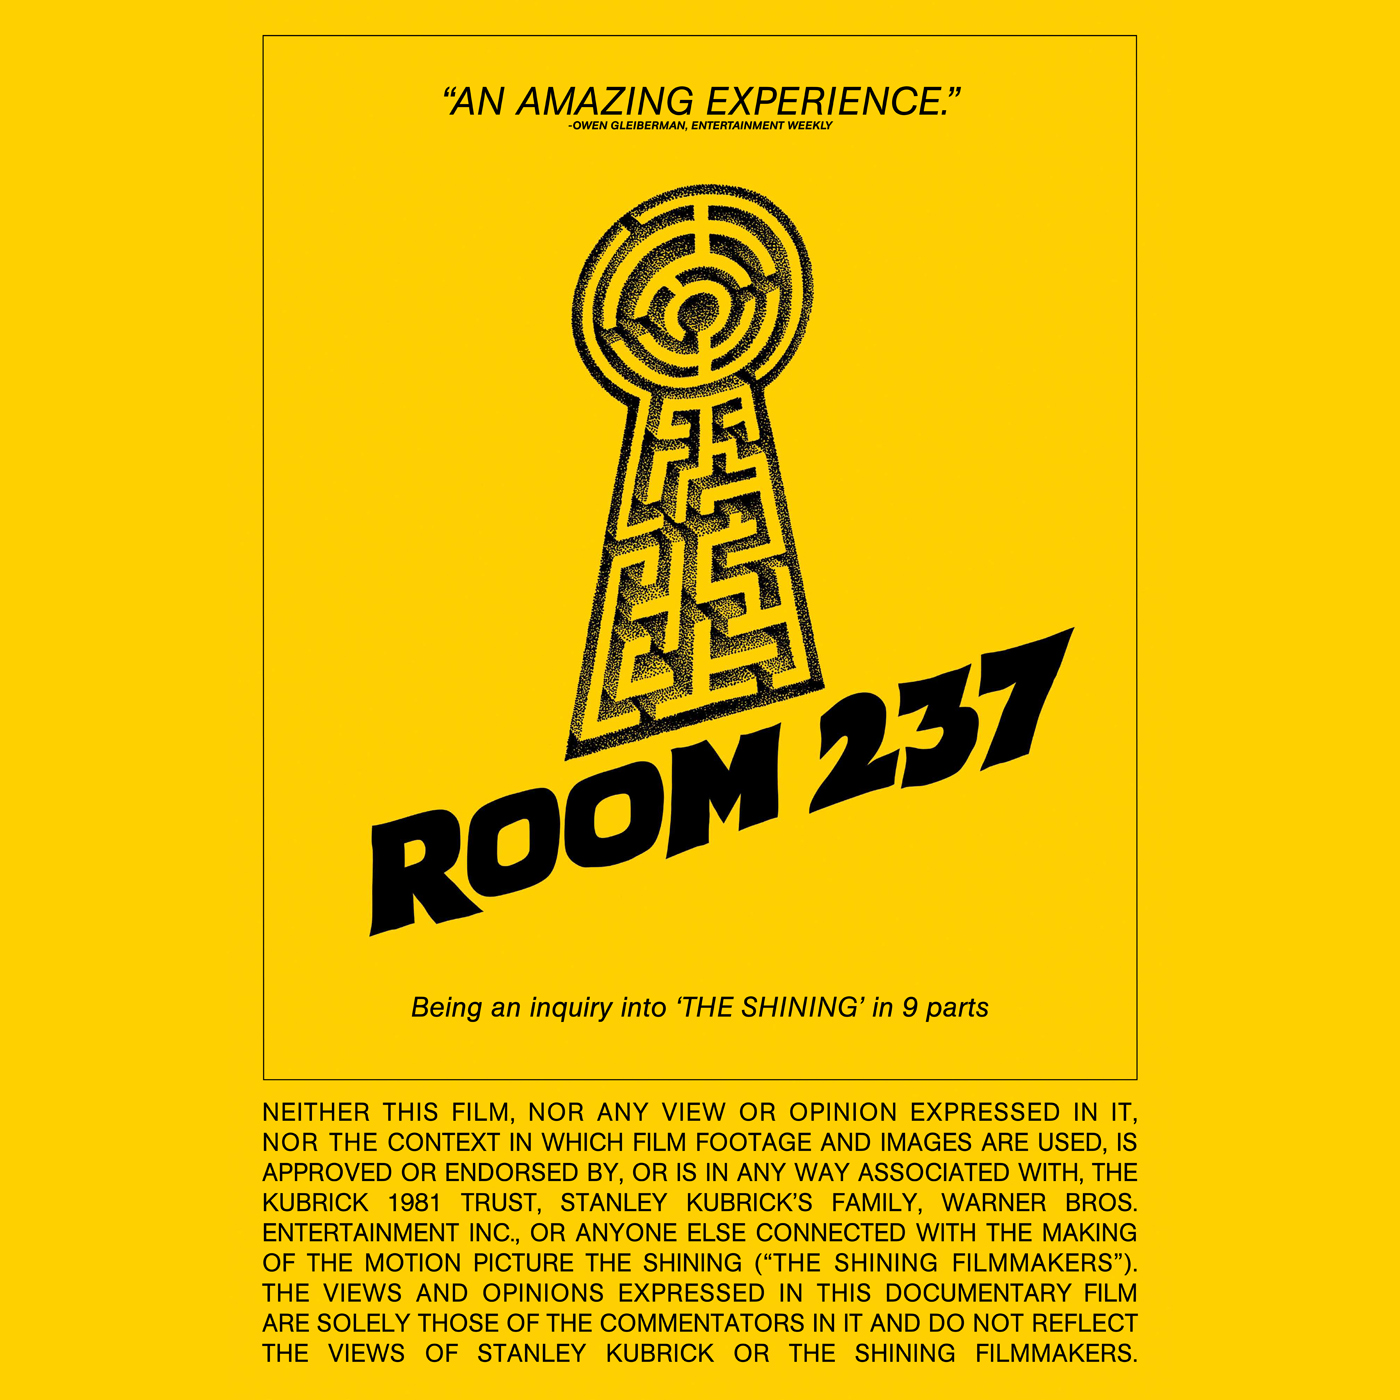 Room 237: 10 Minute Free Preview